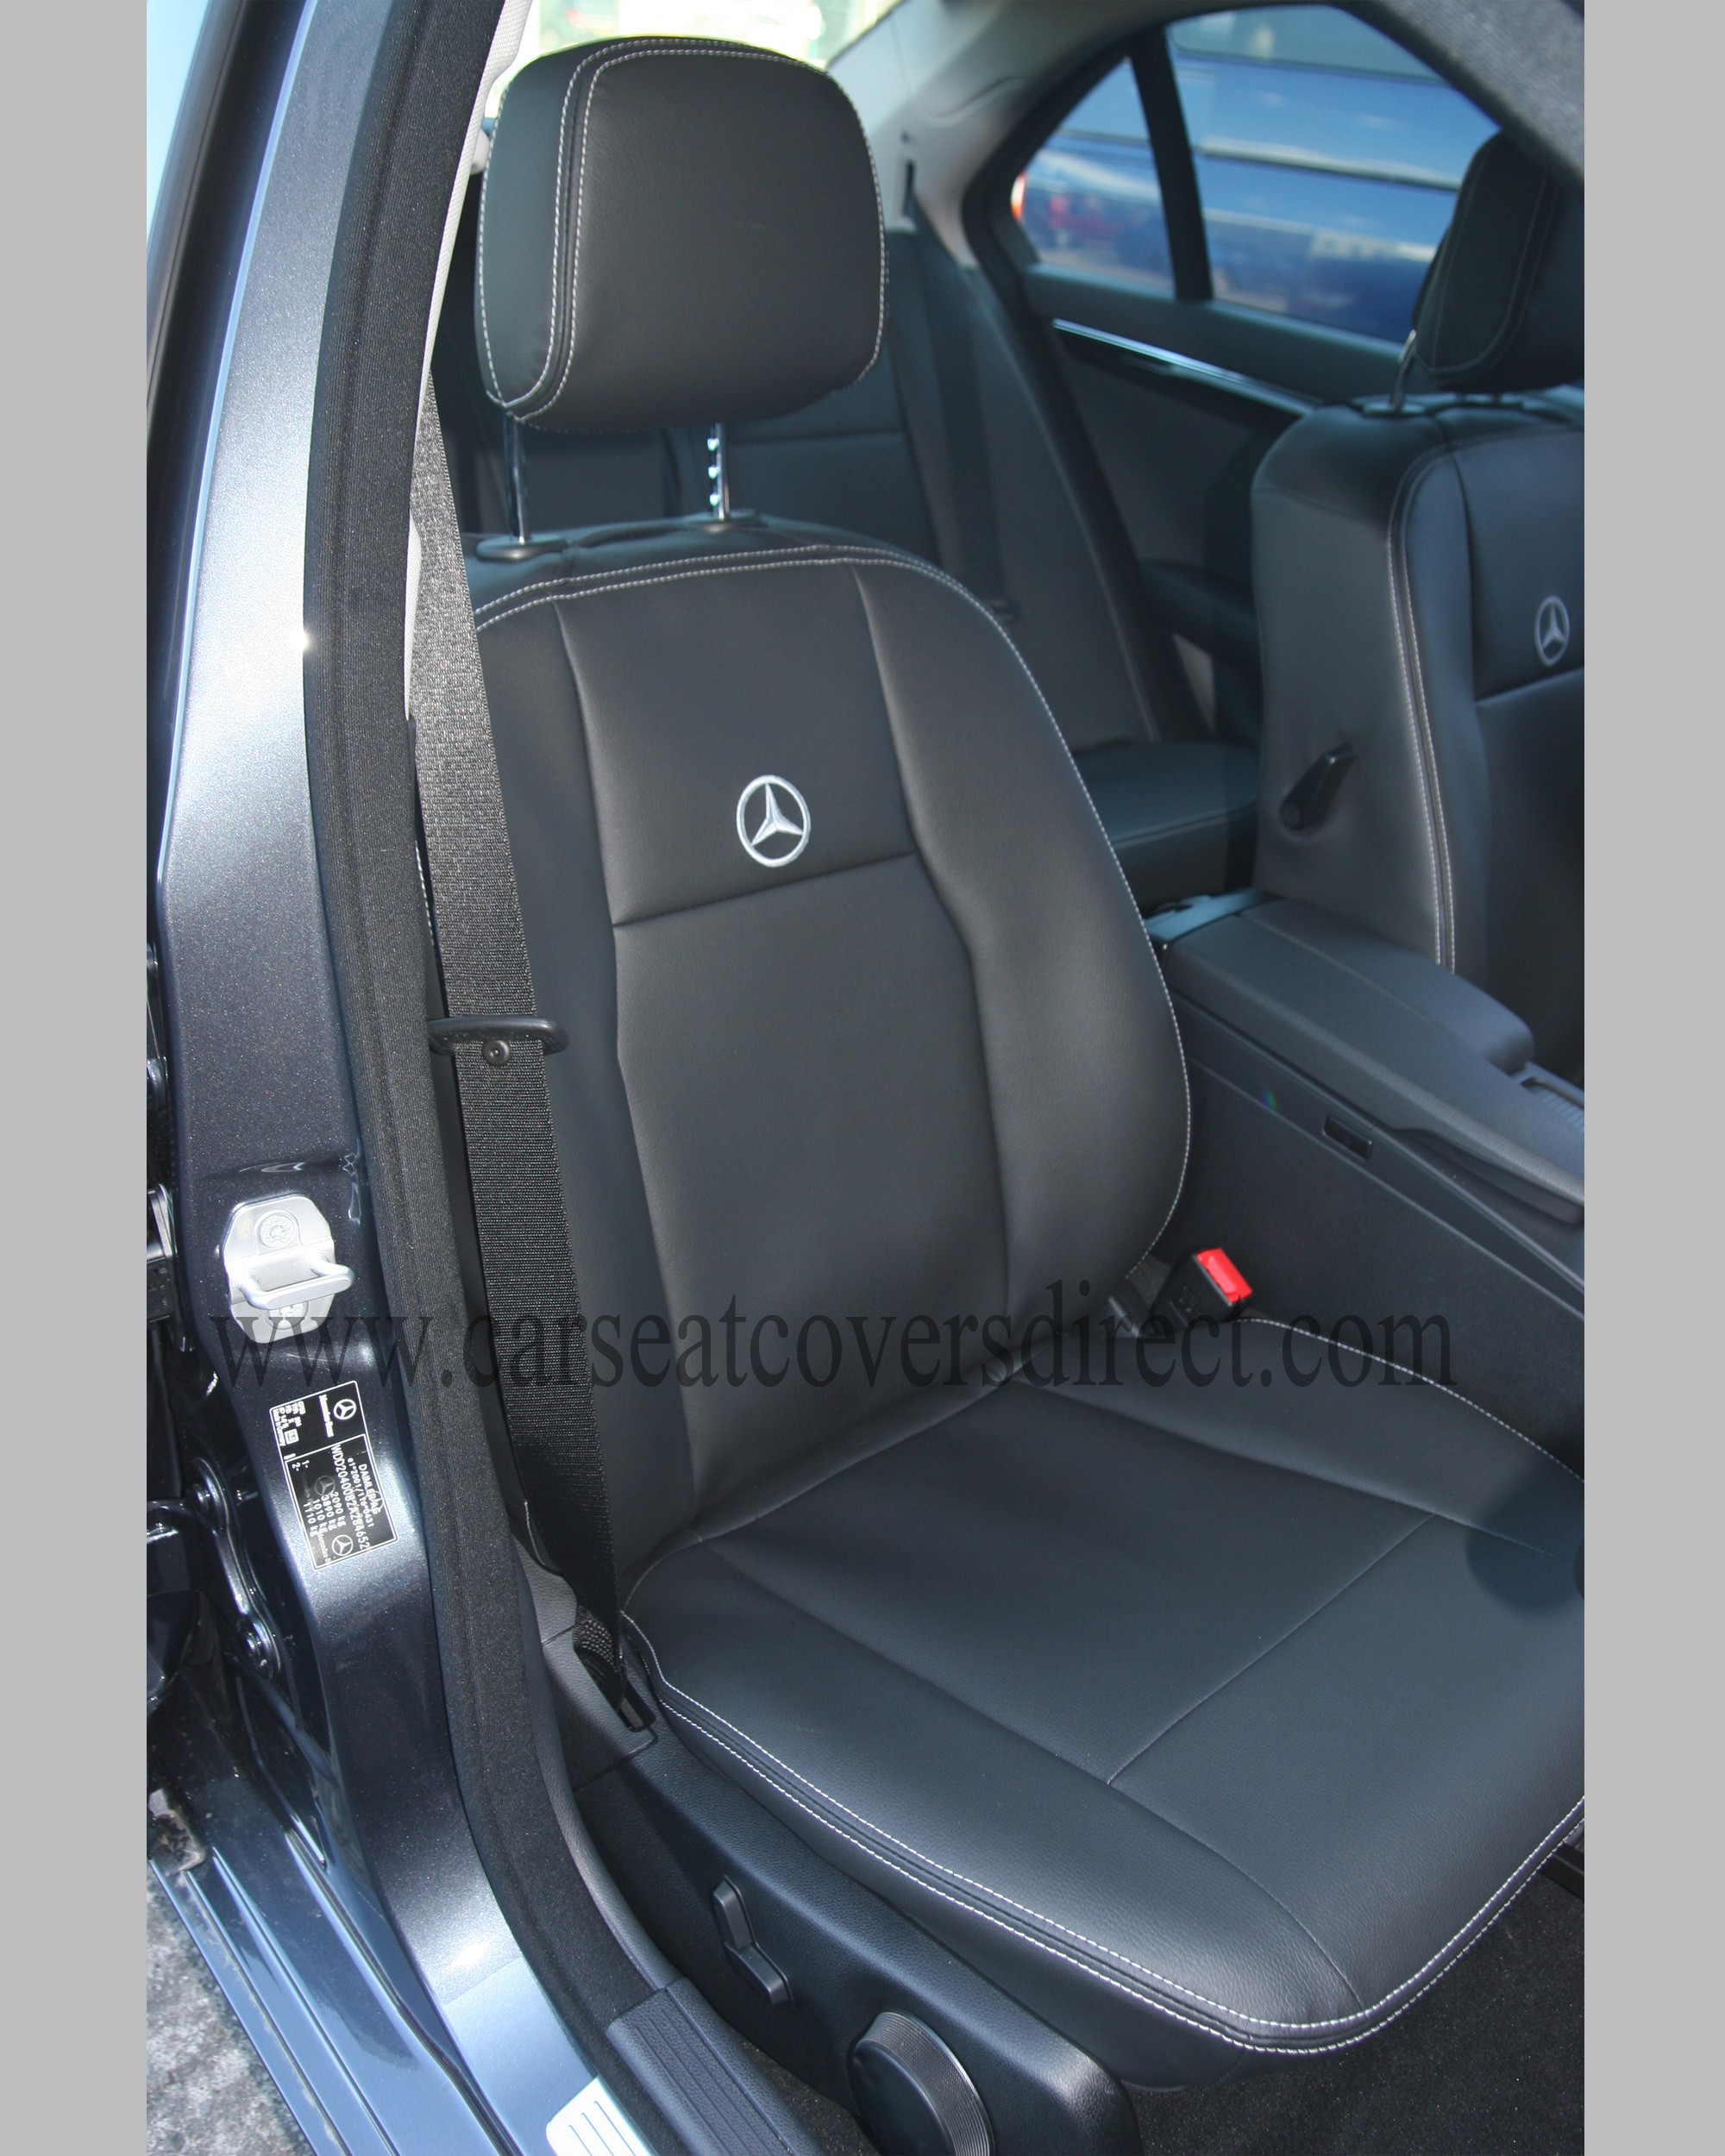 mercedes c class w204 black leatherette seat covers custom car seat covers custom tailored. Black Bedroom Furniture Sets. Home Design Ideas